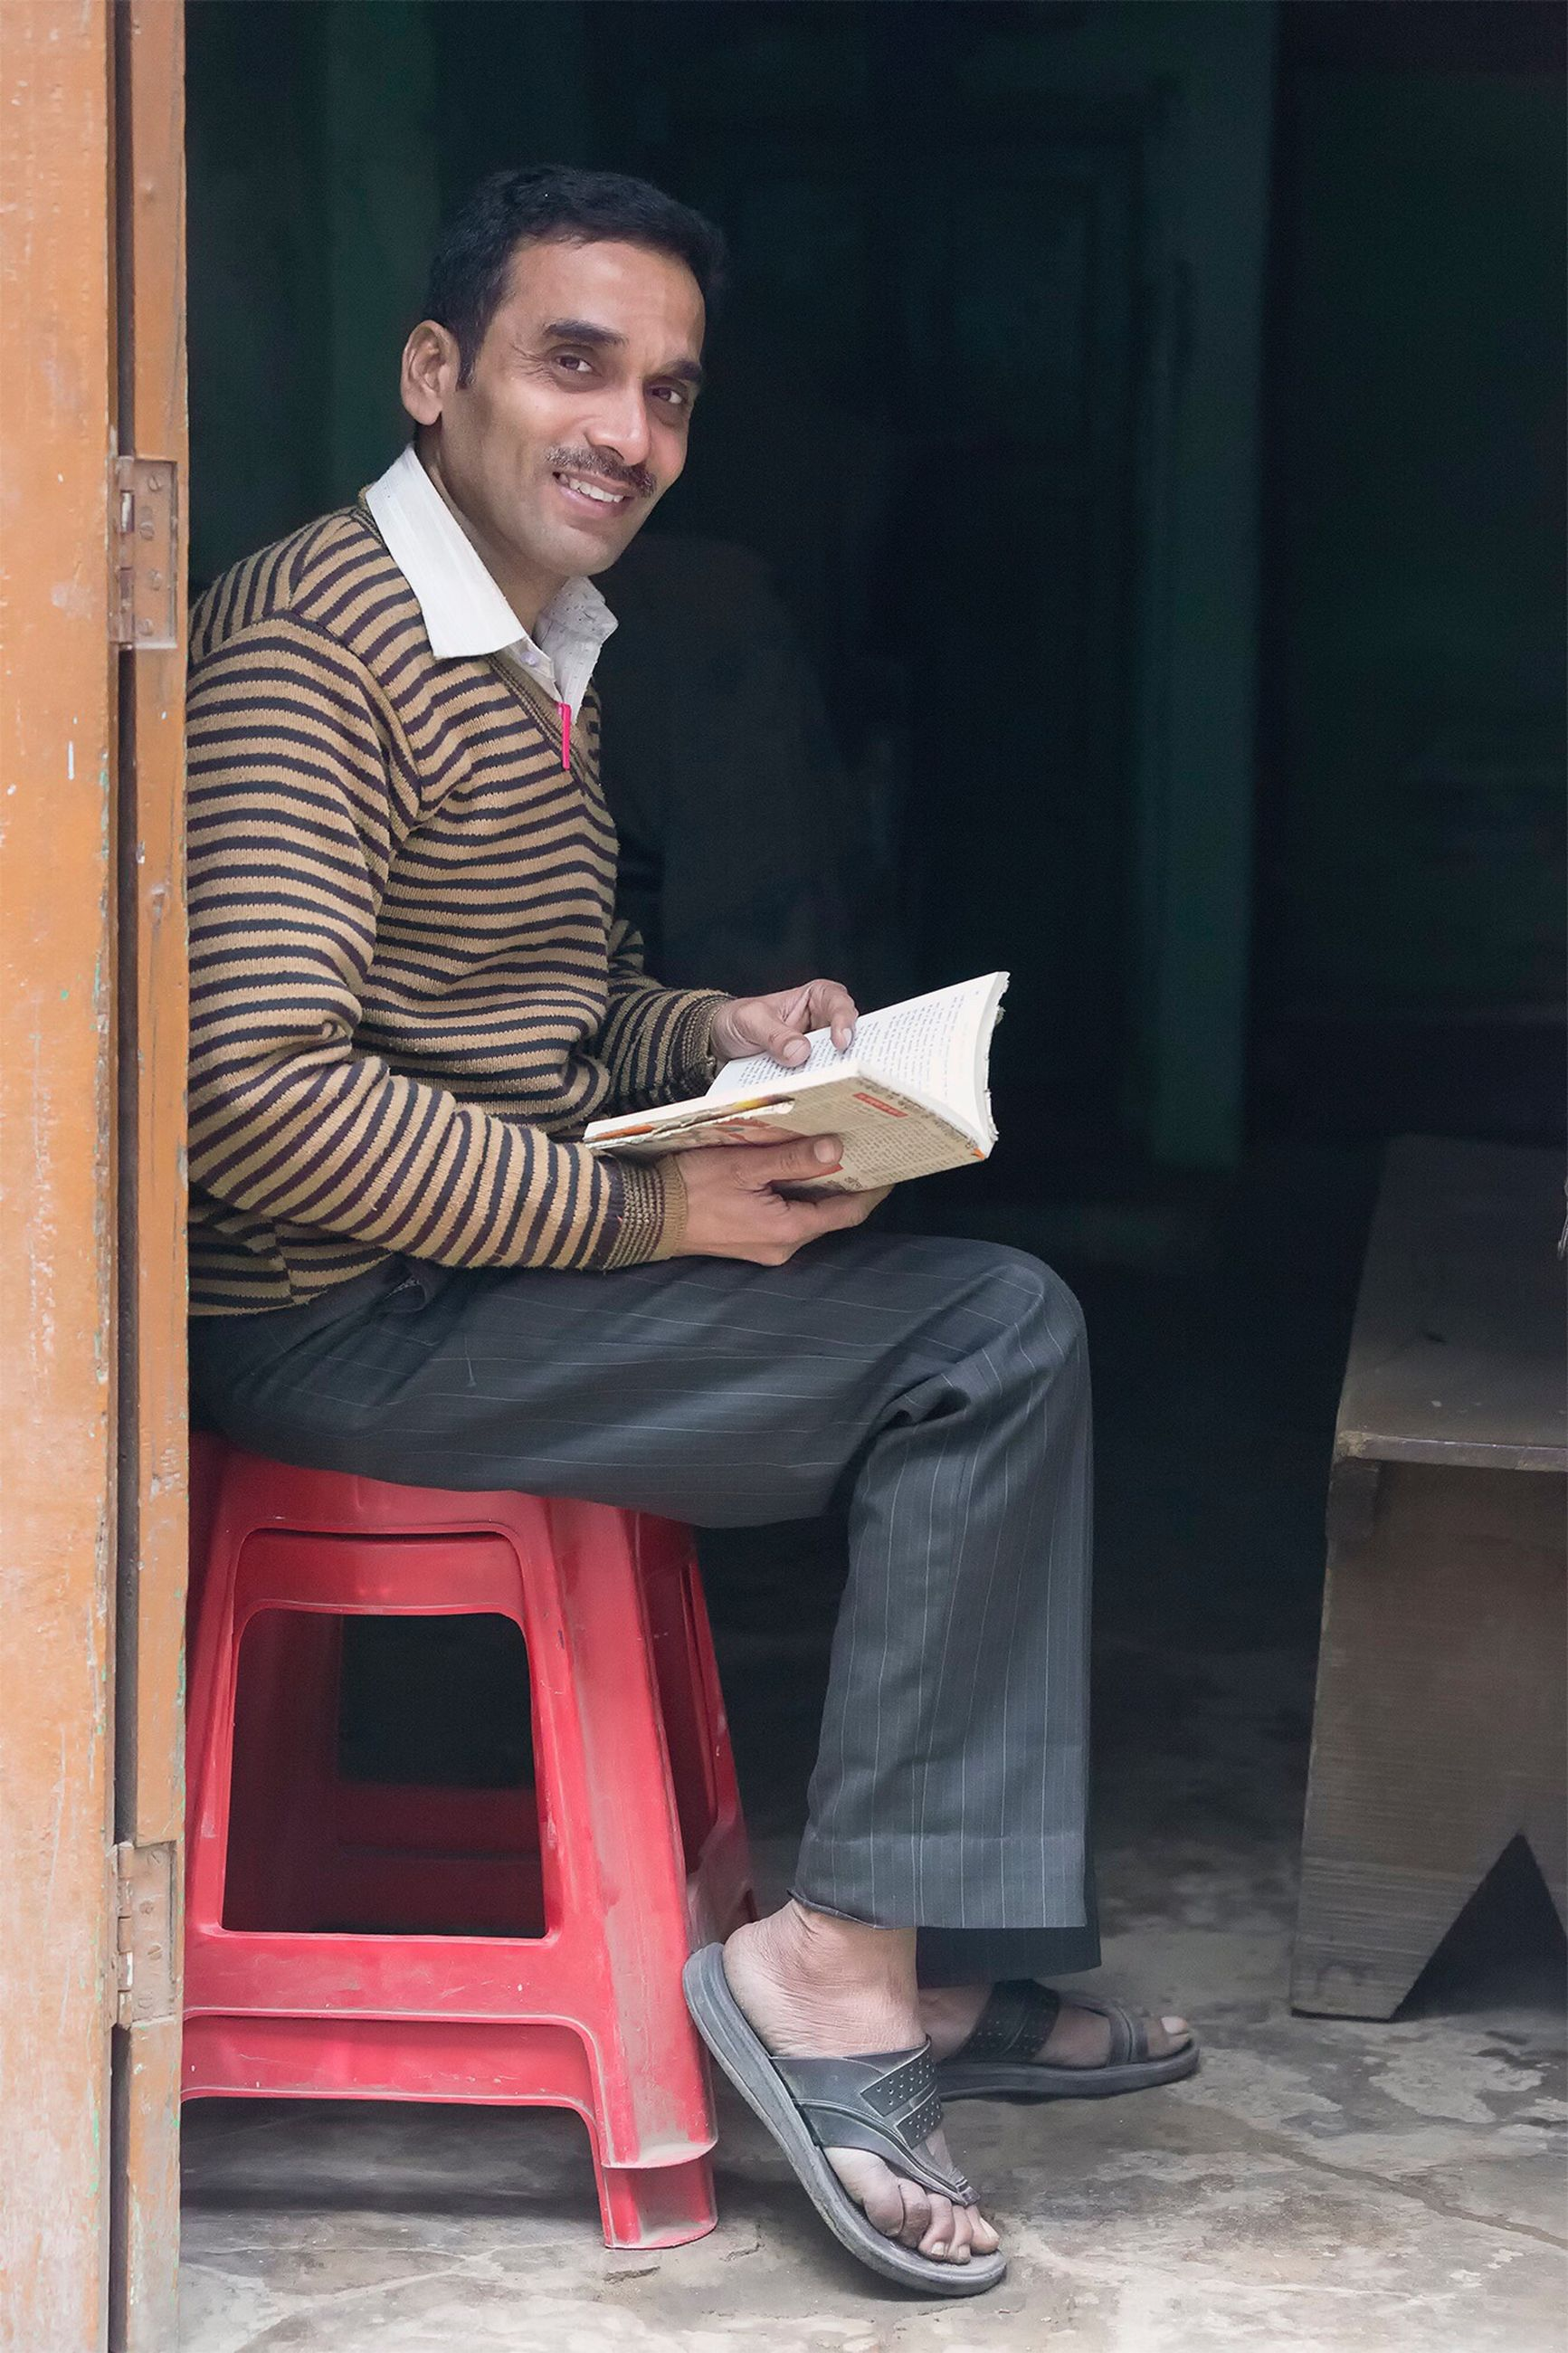 sitting, one person, full length, smiling, real people, looking at camera, outdoors, portrait, day, happiness, young adult, people